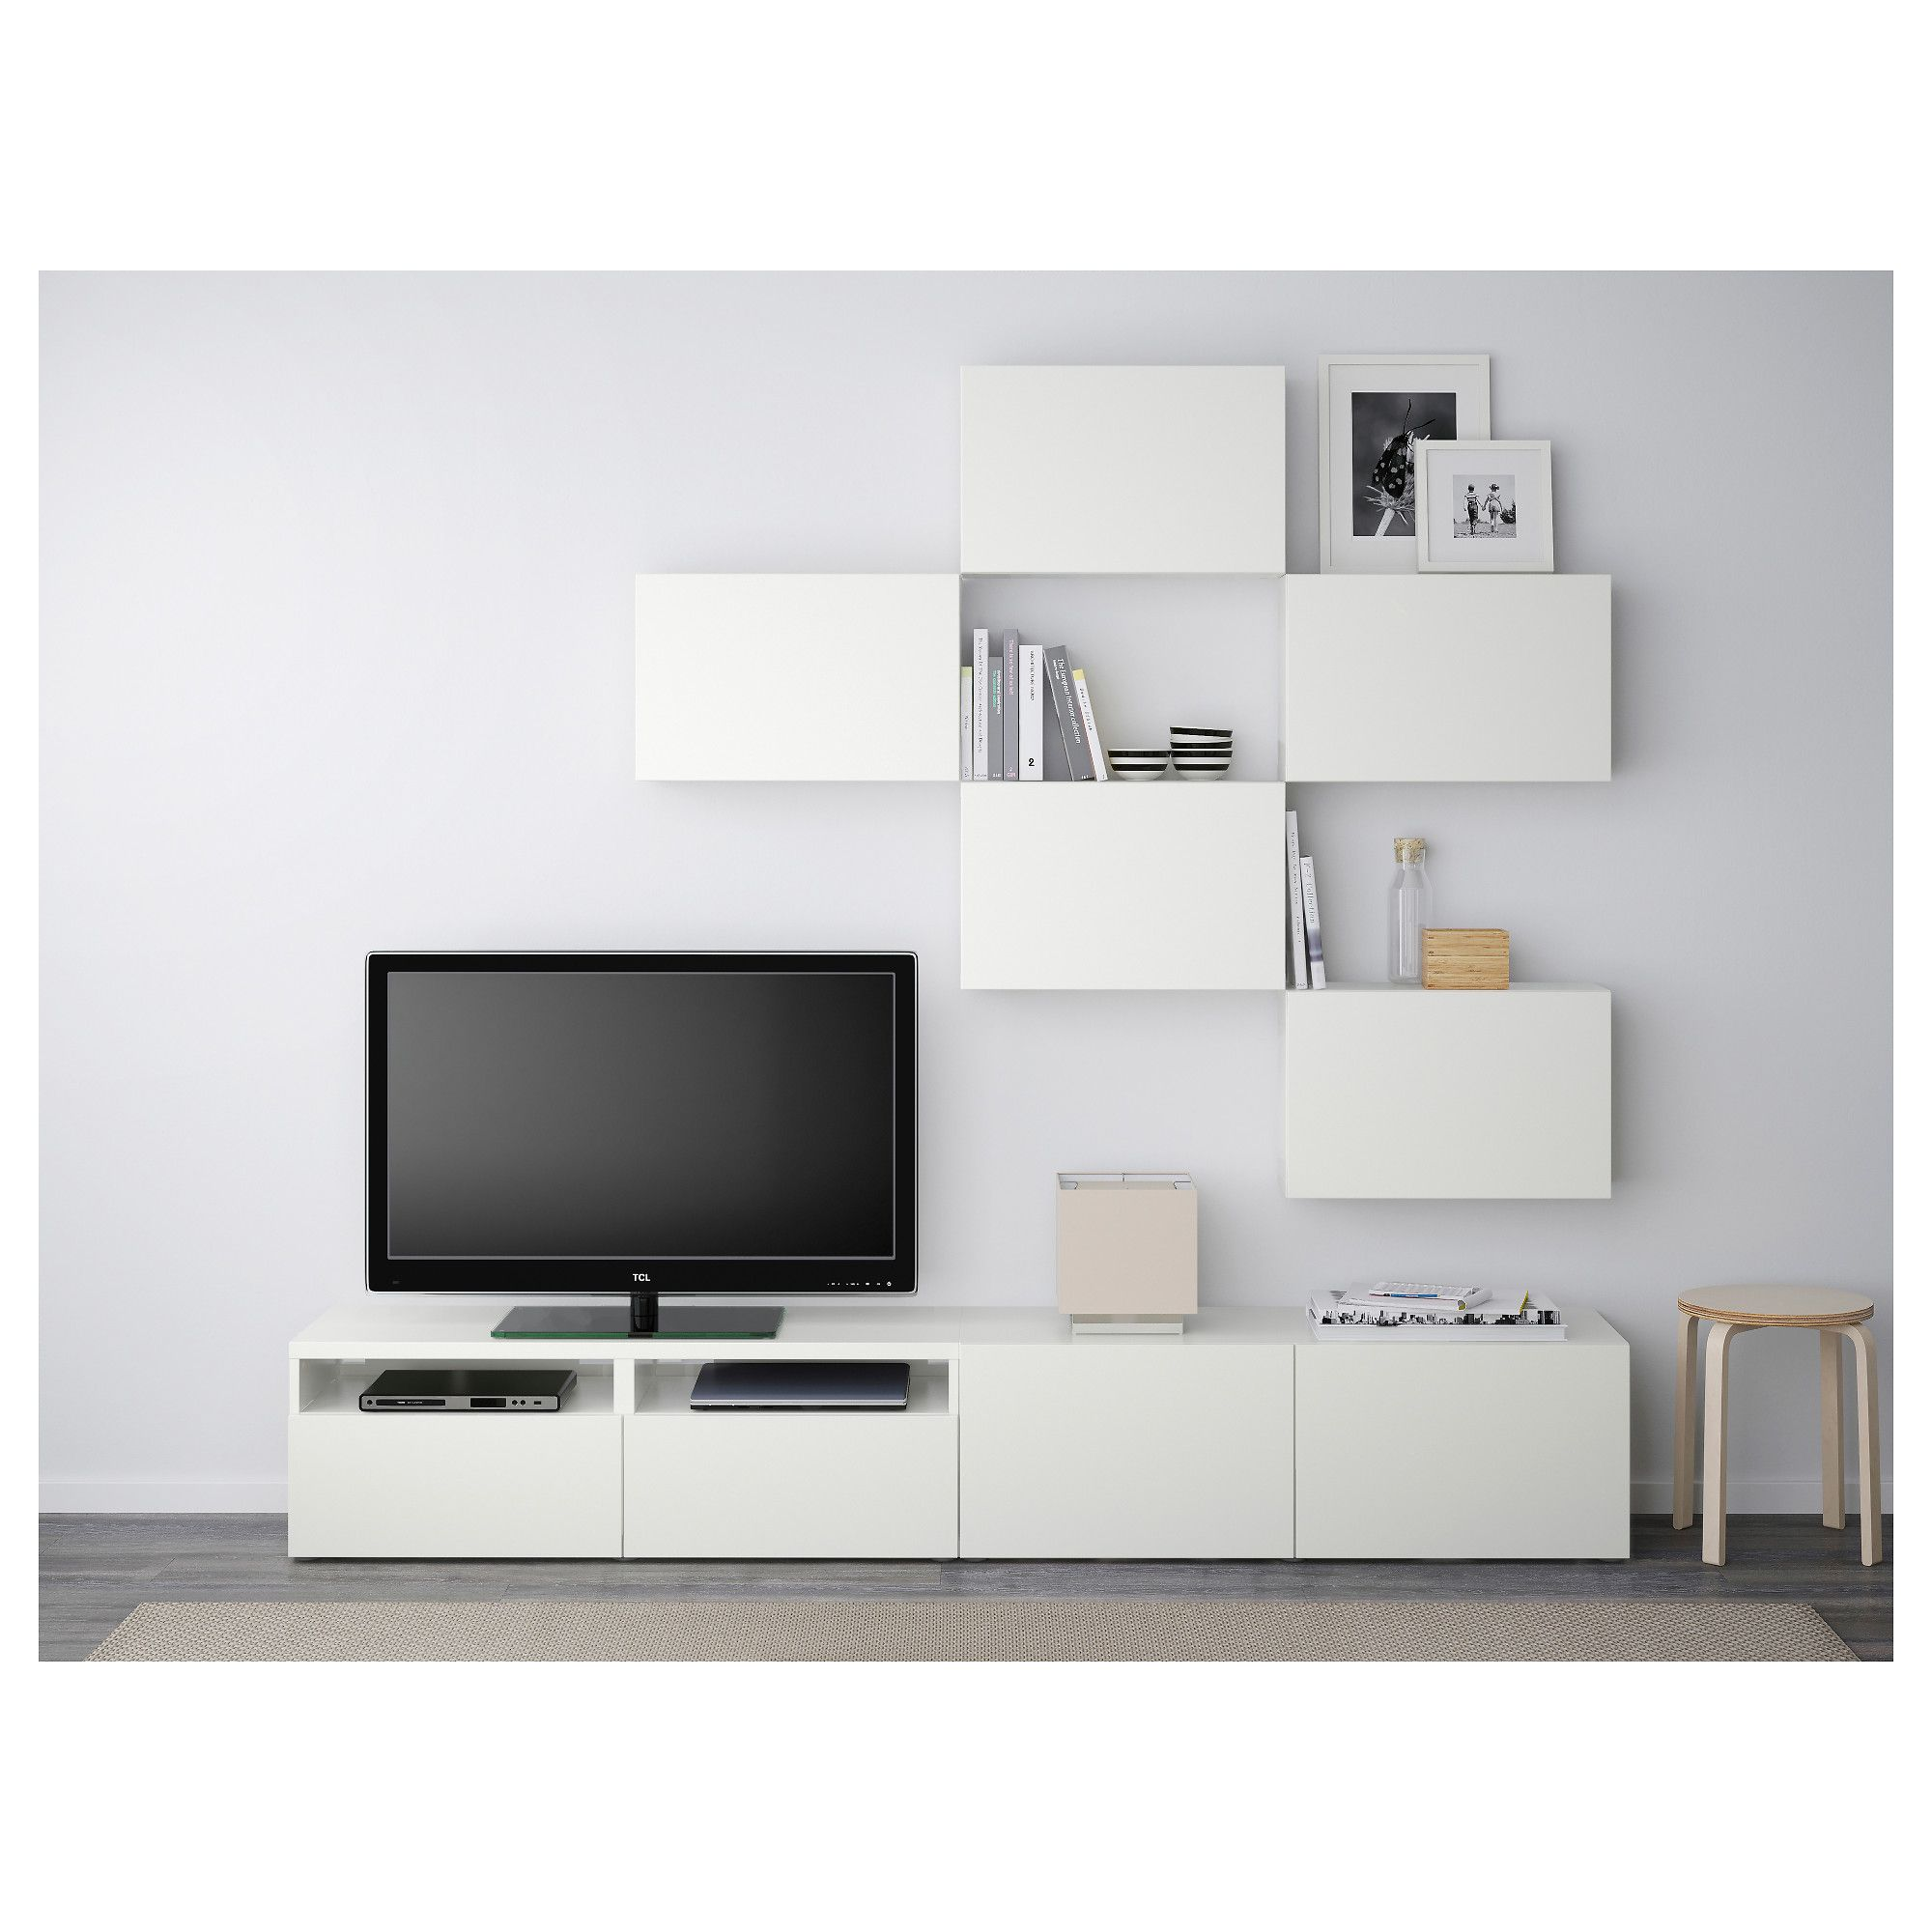 Https Www Google Bg Search Q Tv Home Pinterest # Meuble Tv Rangement Ikea